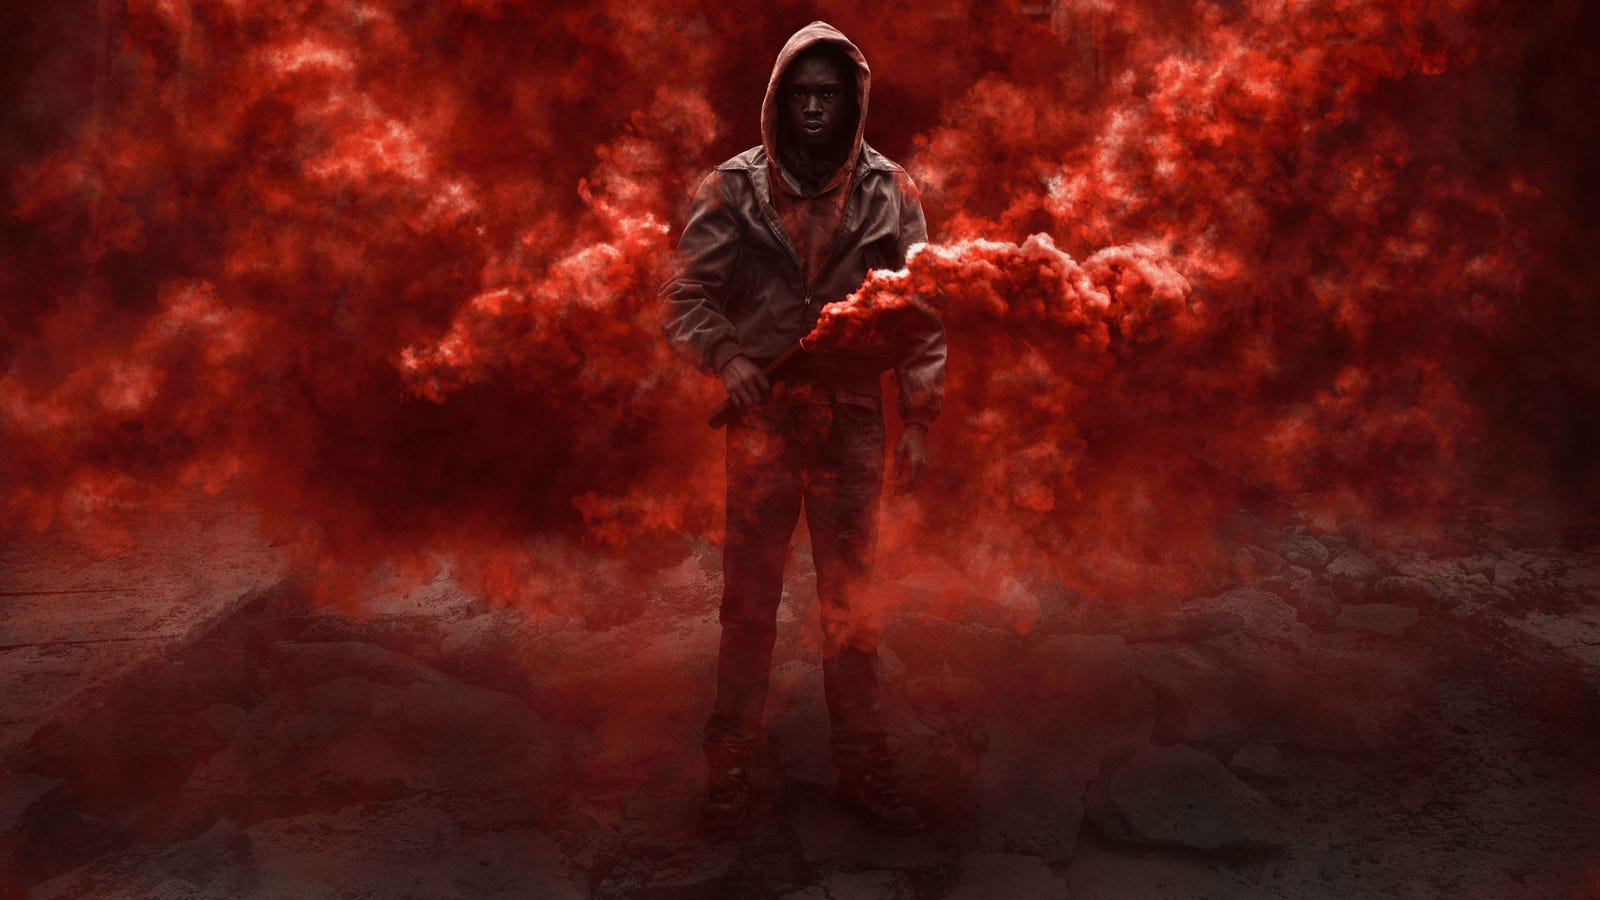 The New Trailer for the Alien Invasion Film Captive State Feels Eerily Close to Real Life